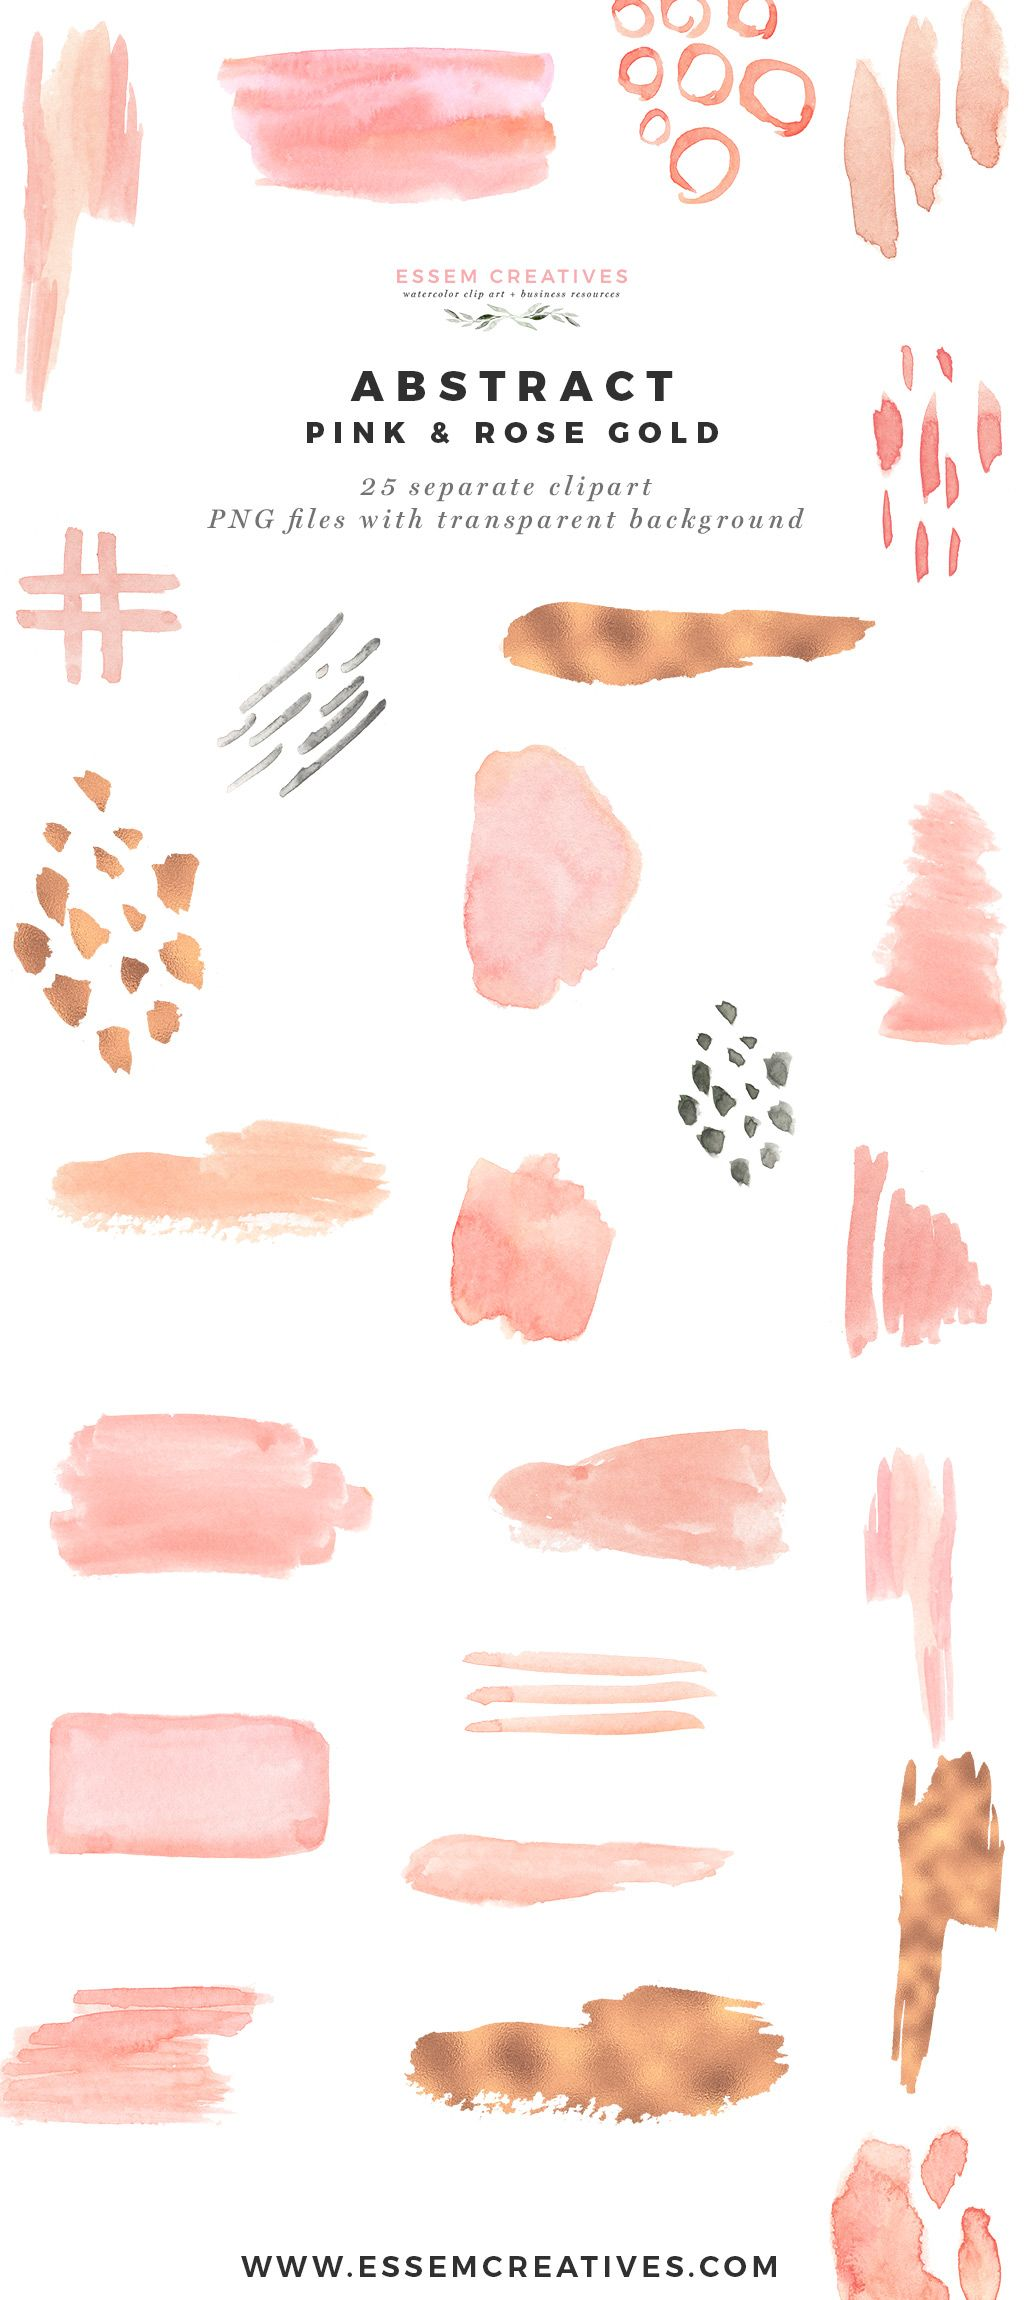 Modern Abstract Pink And Rose Gold Watercolor Design Essem